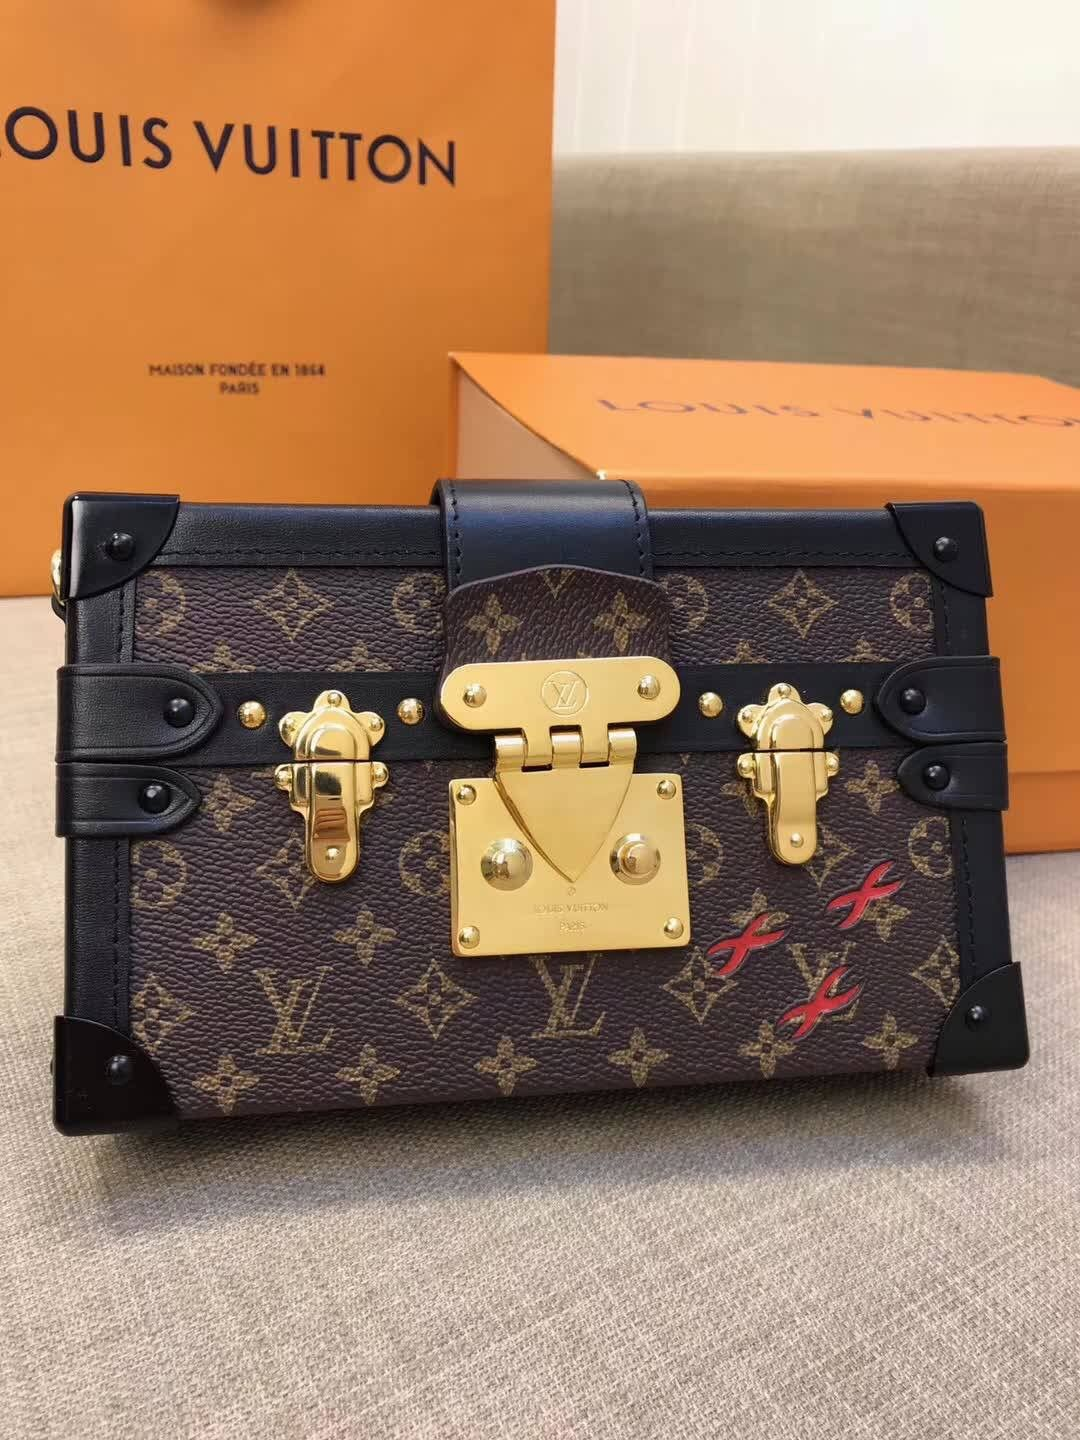 Miniaudiere make up bag Hd picture what are how review small handbags, phone bag how to popular which one buy shopping market designer fashion streetstyle team up clutch satchel pouch m